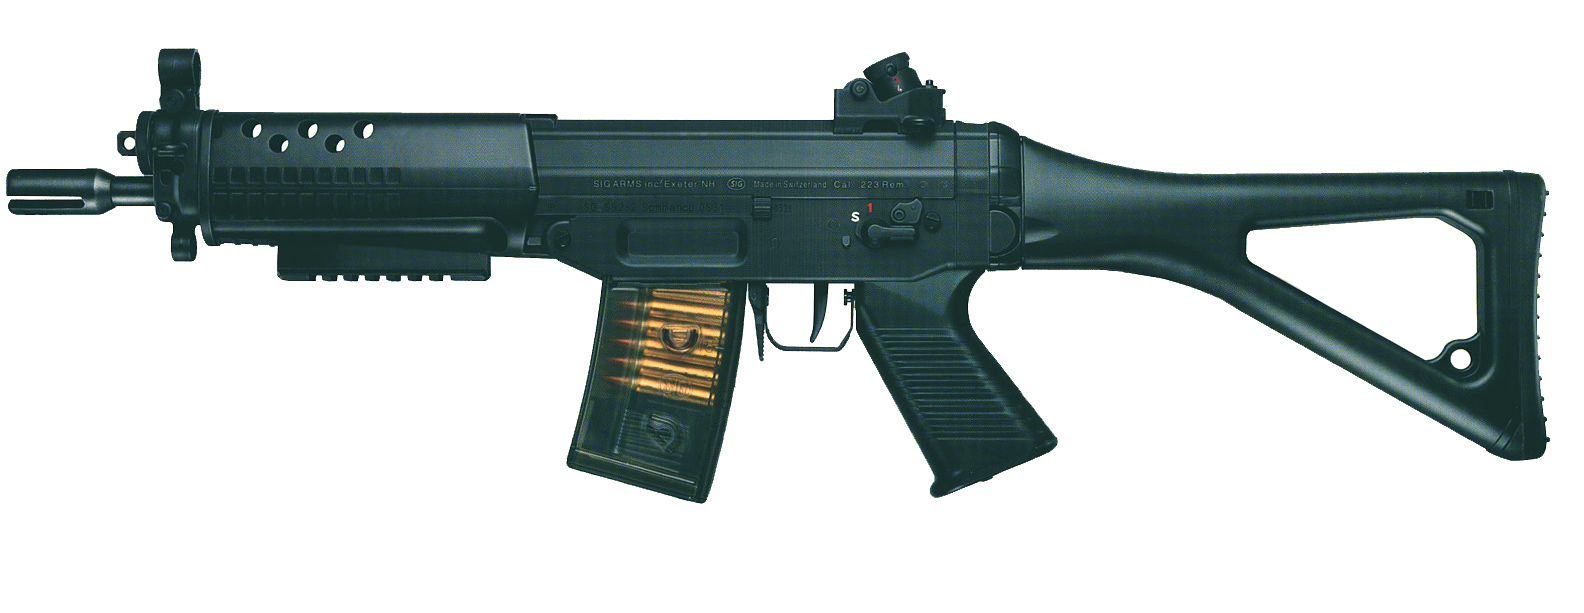 Picture of Knex Sig 552